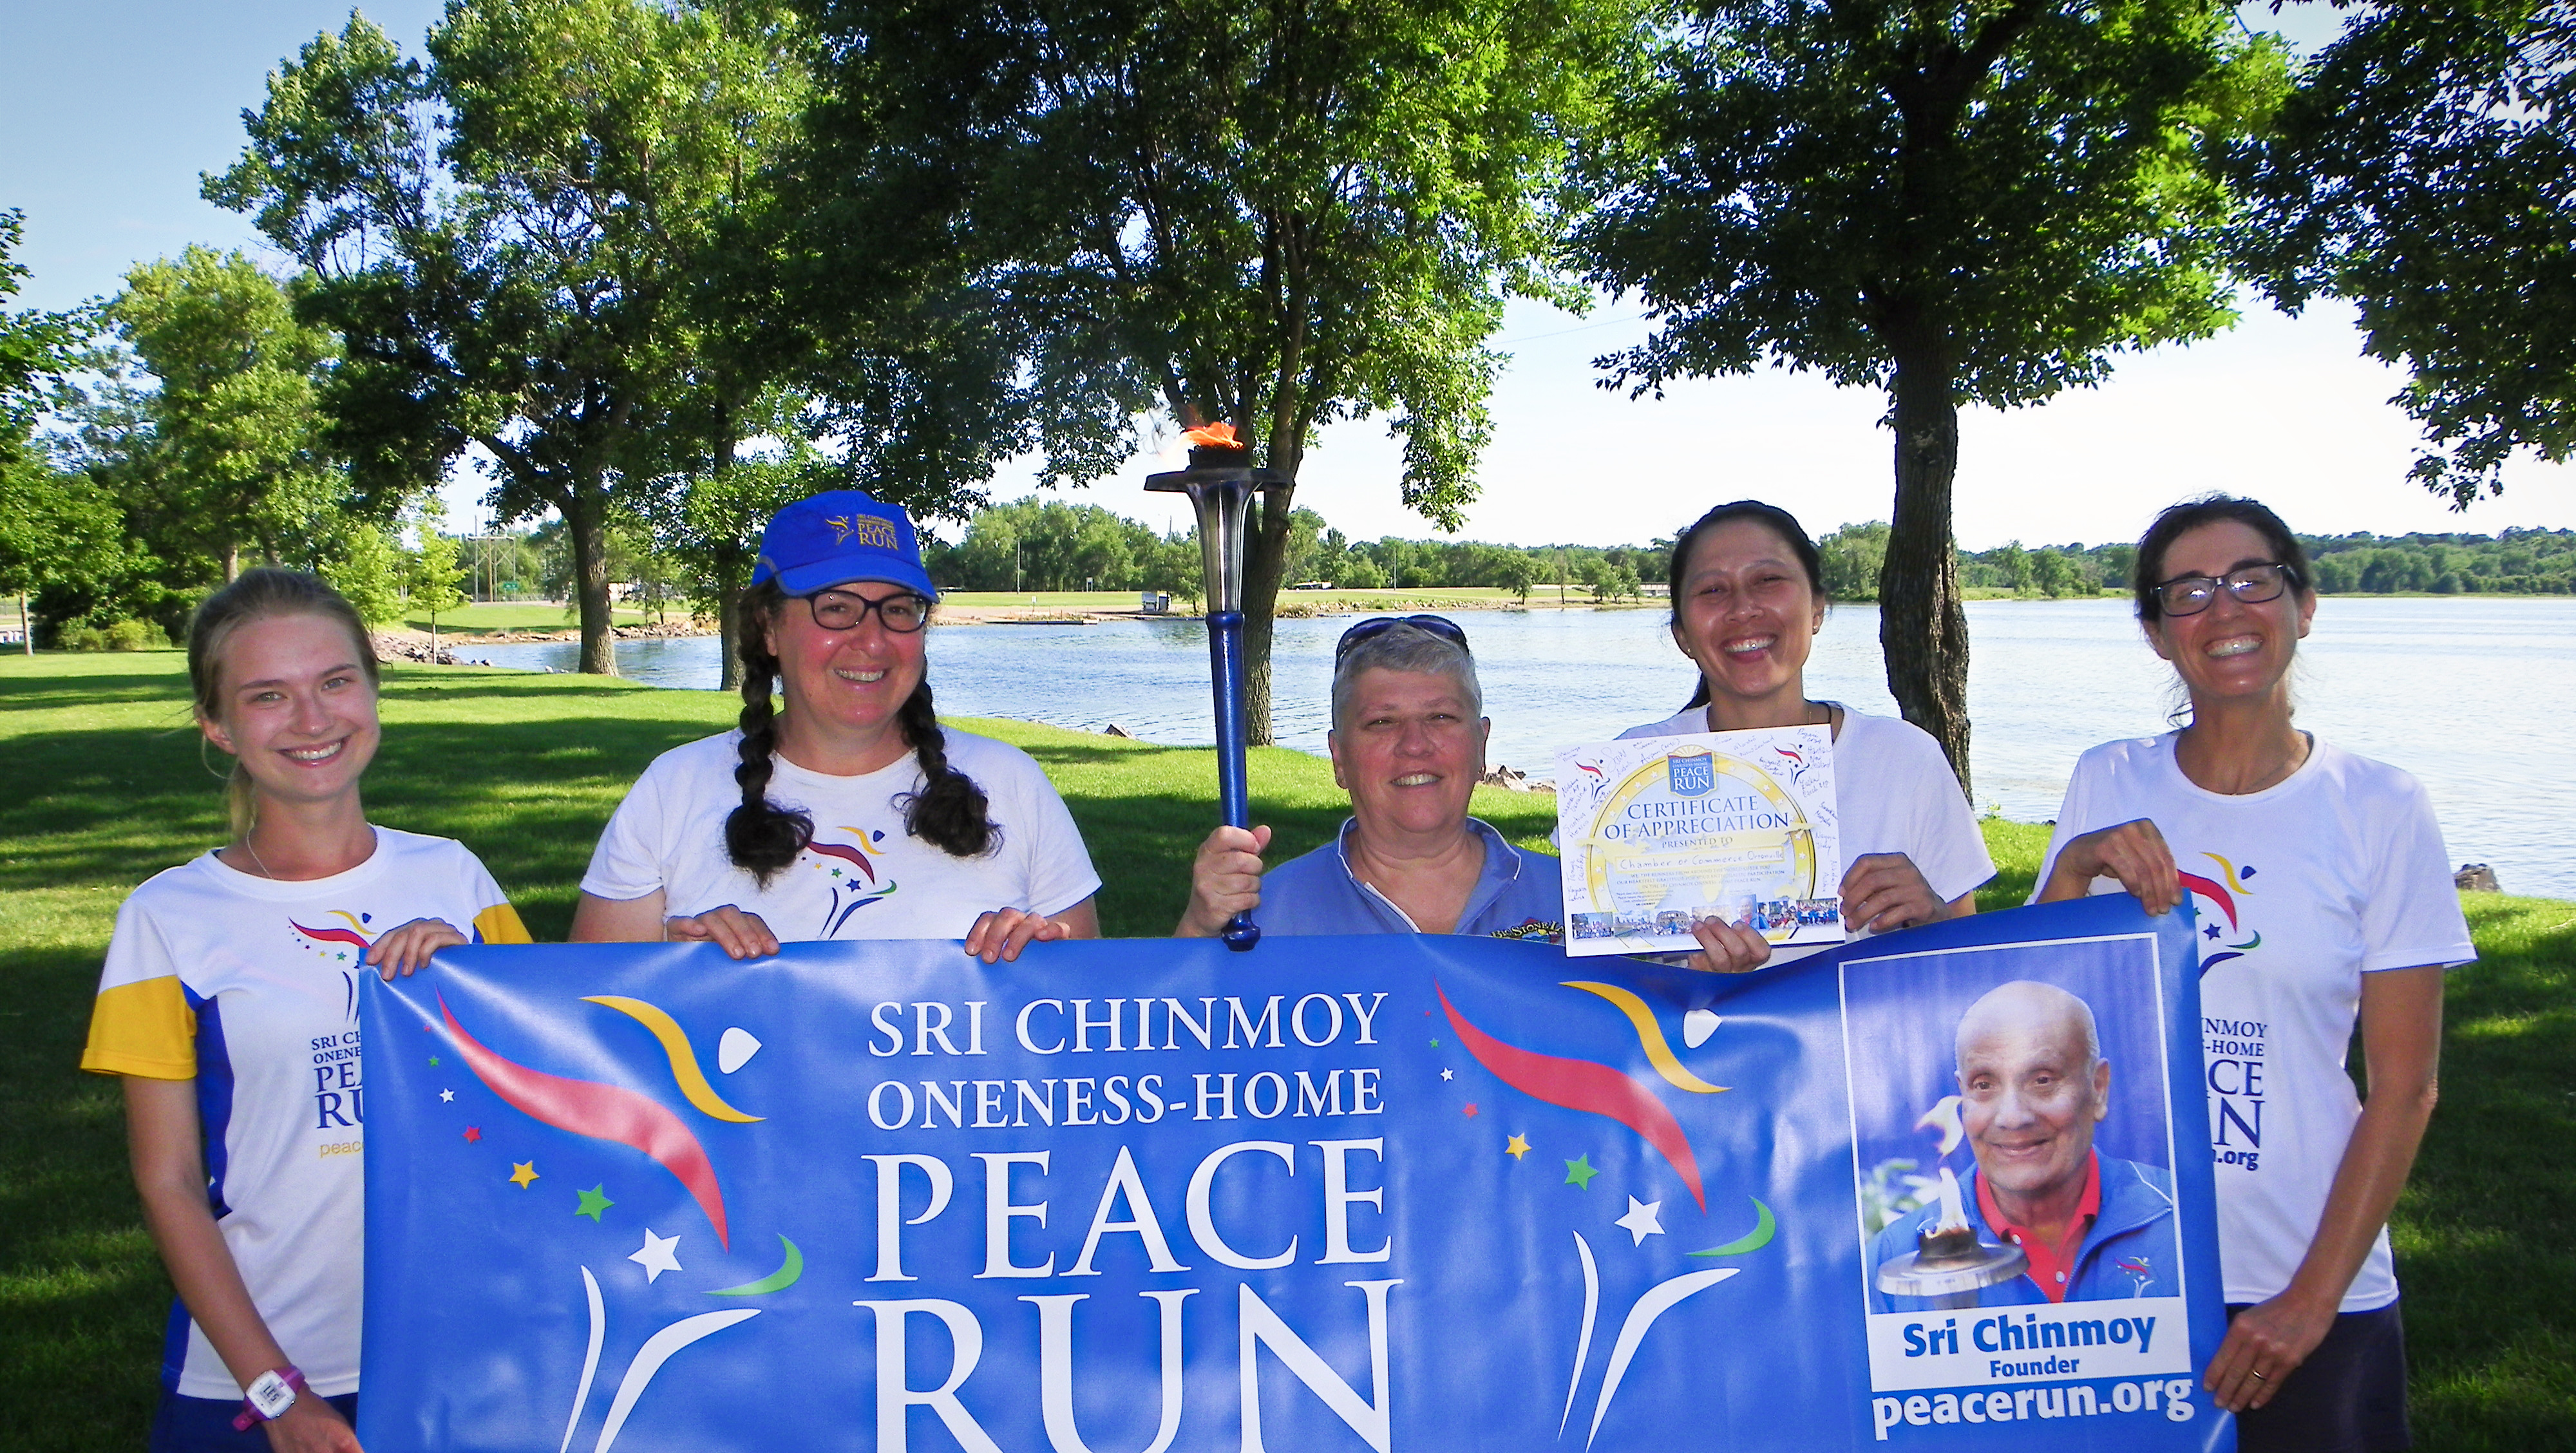 Peace Run in Ortonville at Lakeside Park